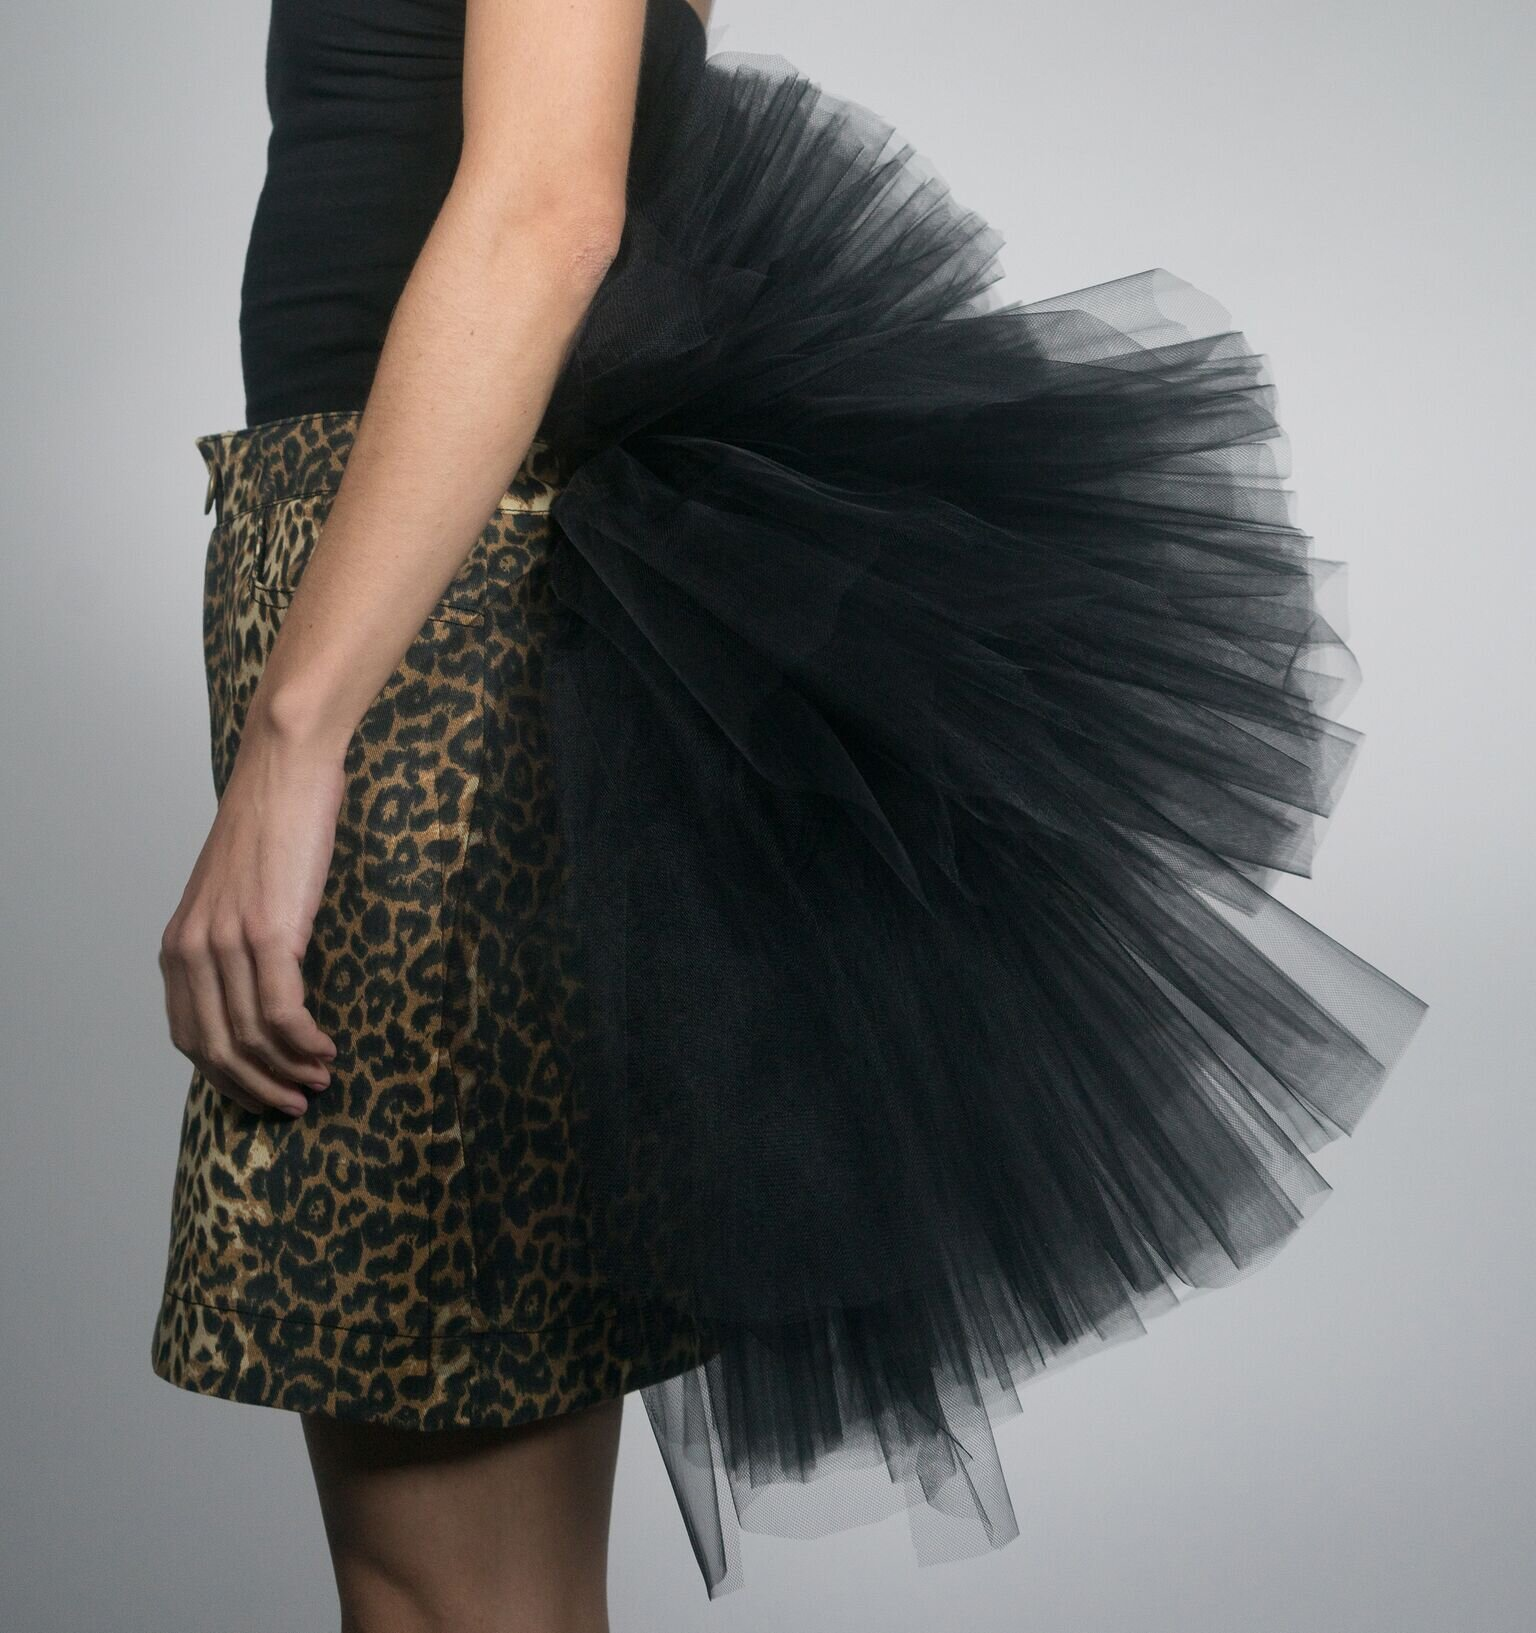 Do it For the Gram Skirt - printed twill skirt with ruffled tulle back detail  available in leopard and camouflage